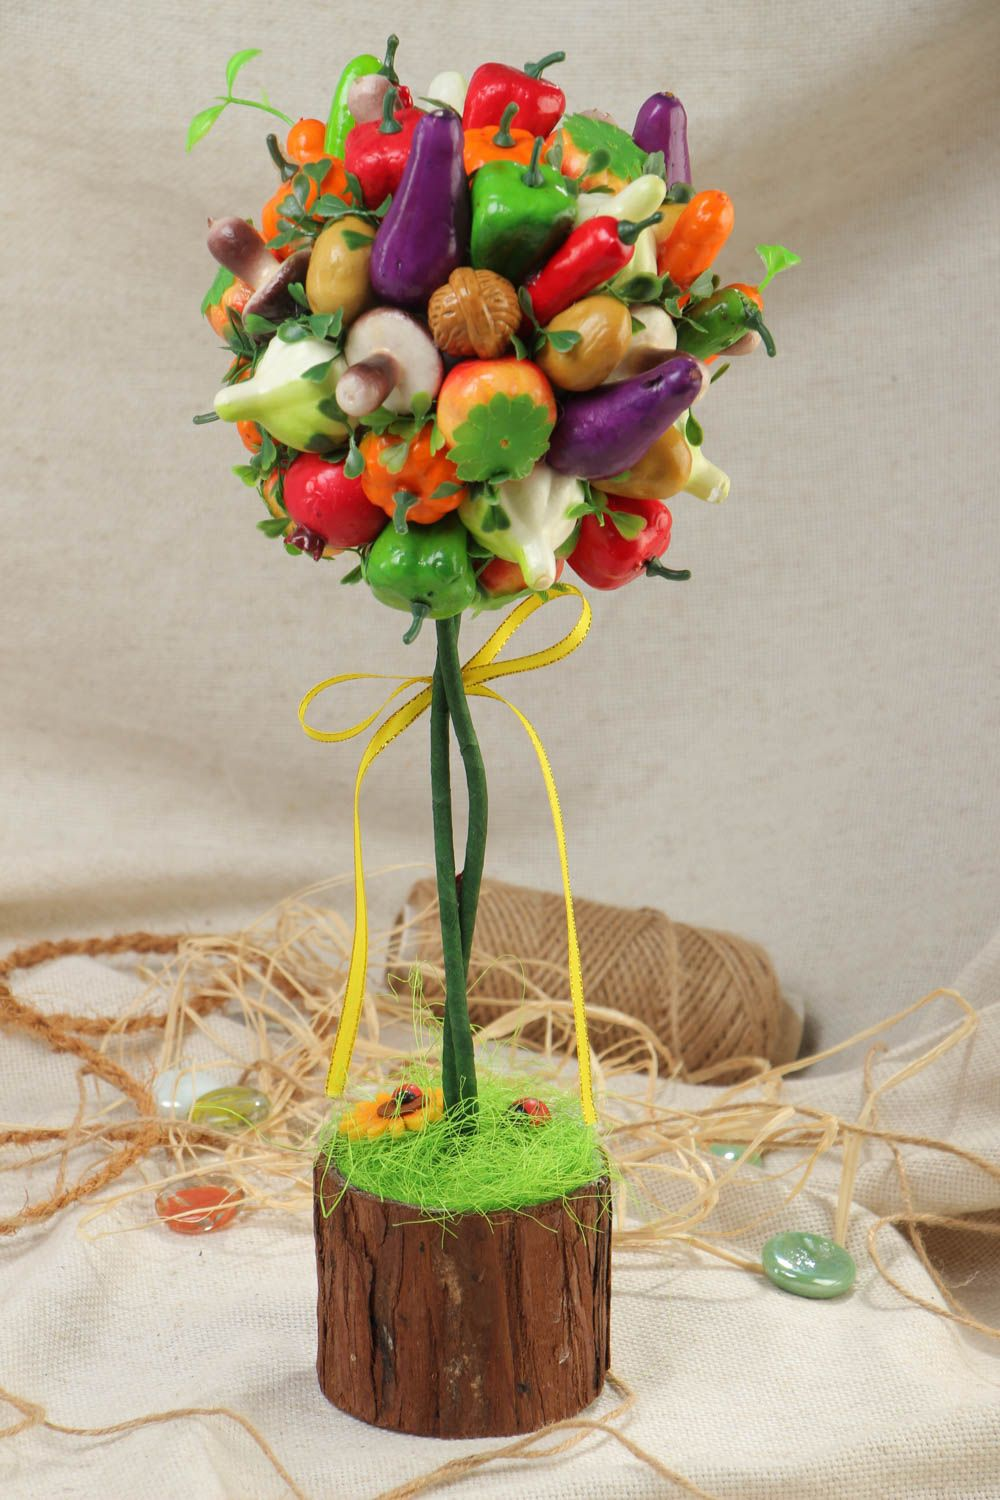 Handmade decorative bright topiary tree with fruit and vegetables for table decor photo 1